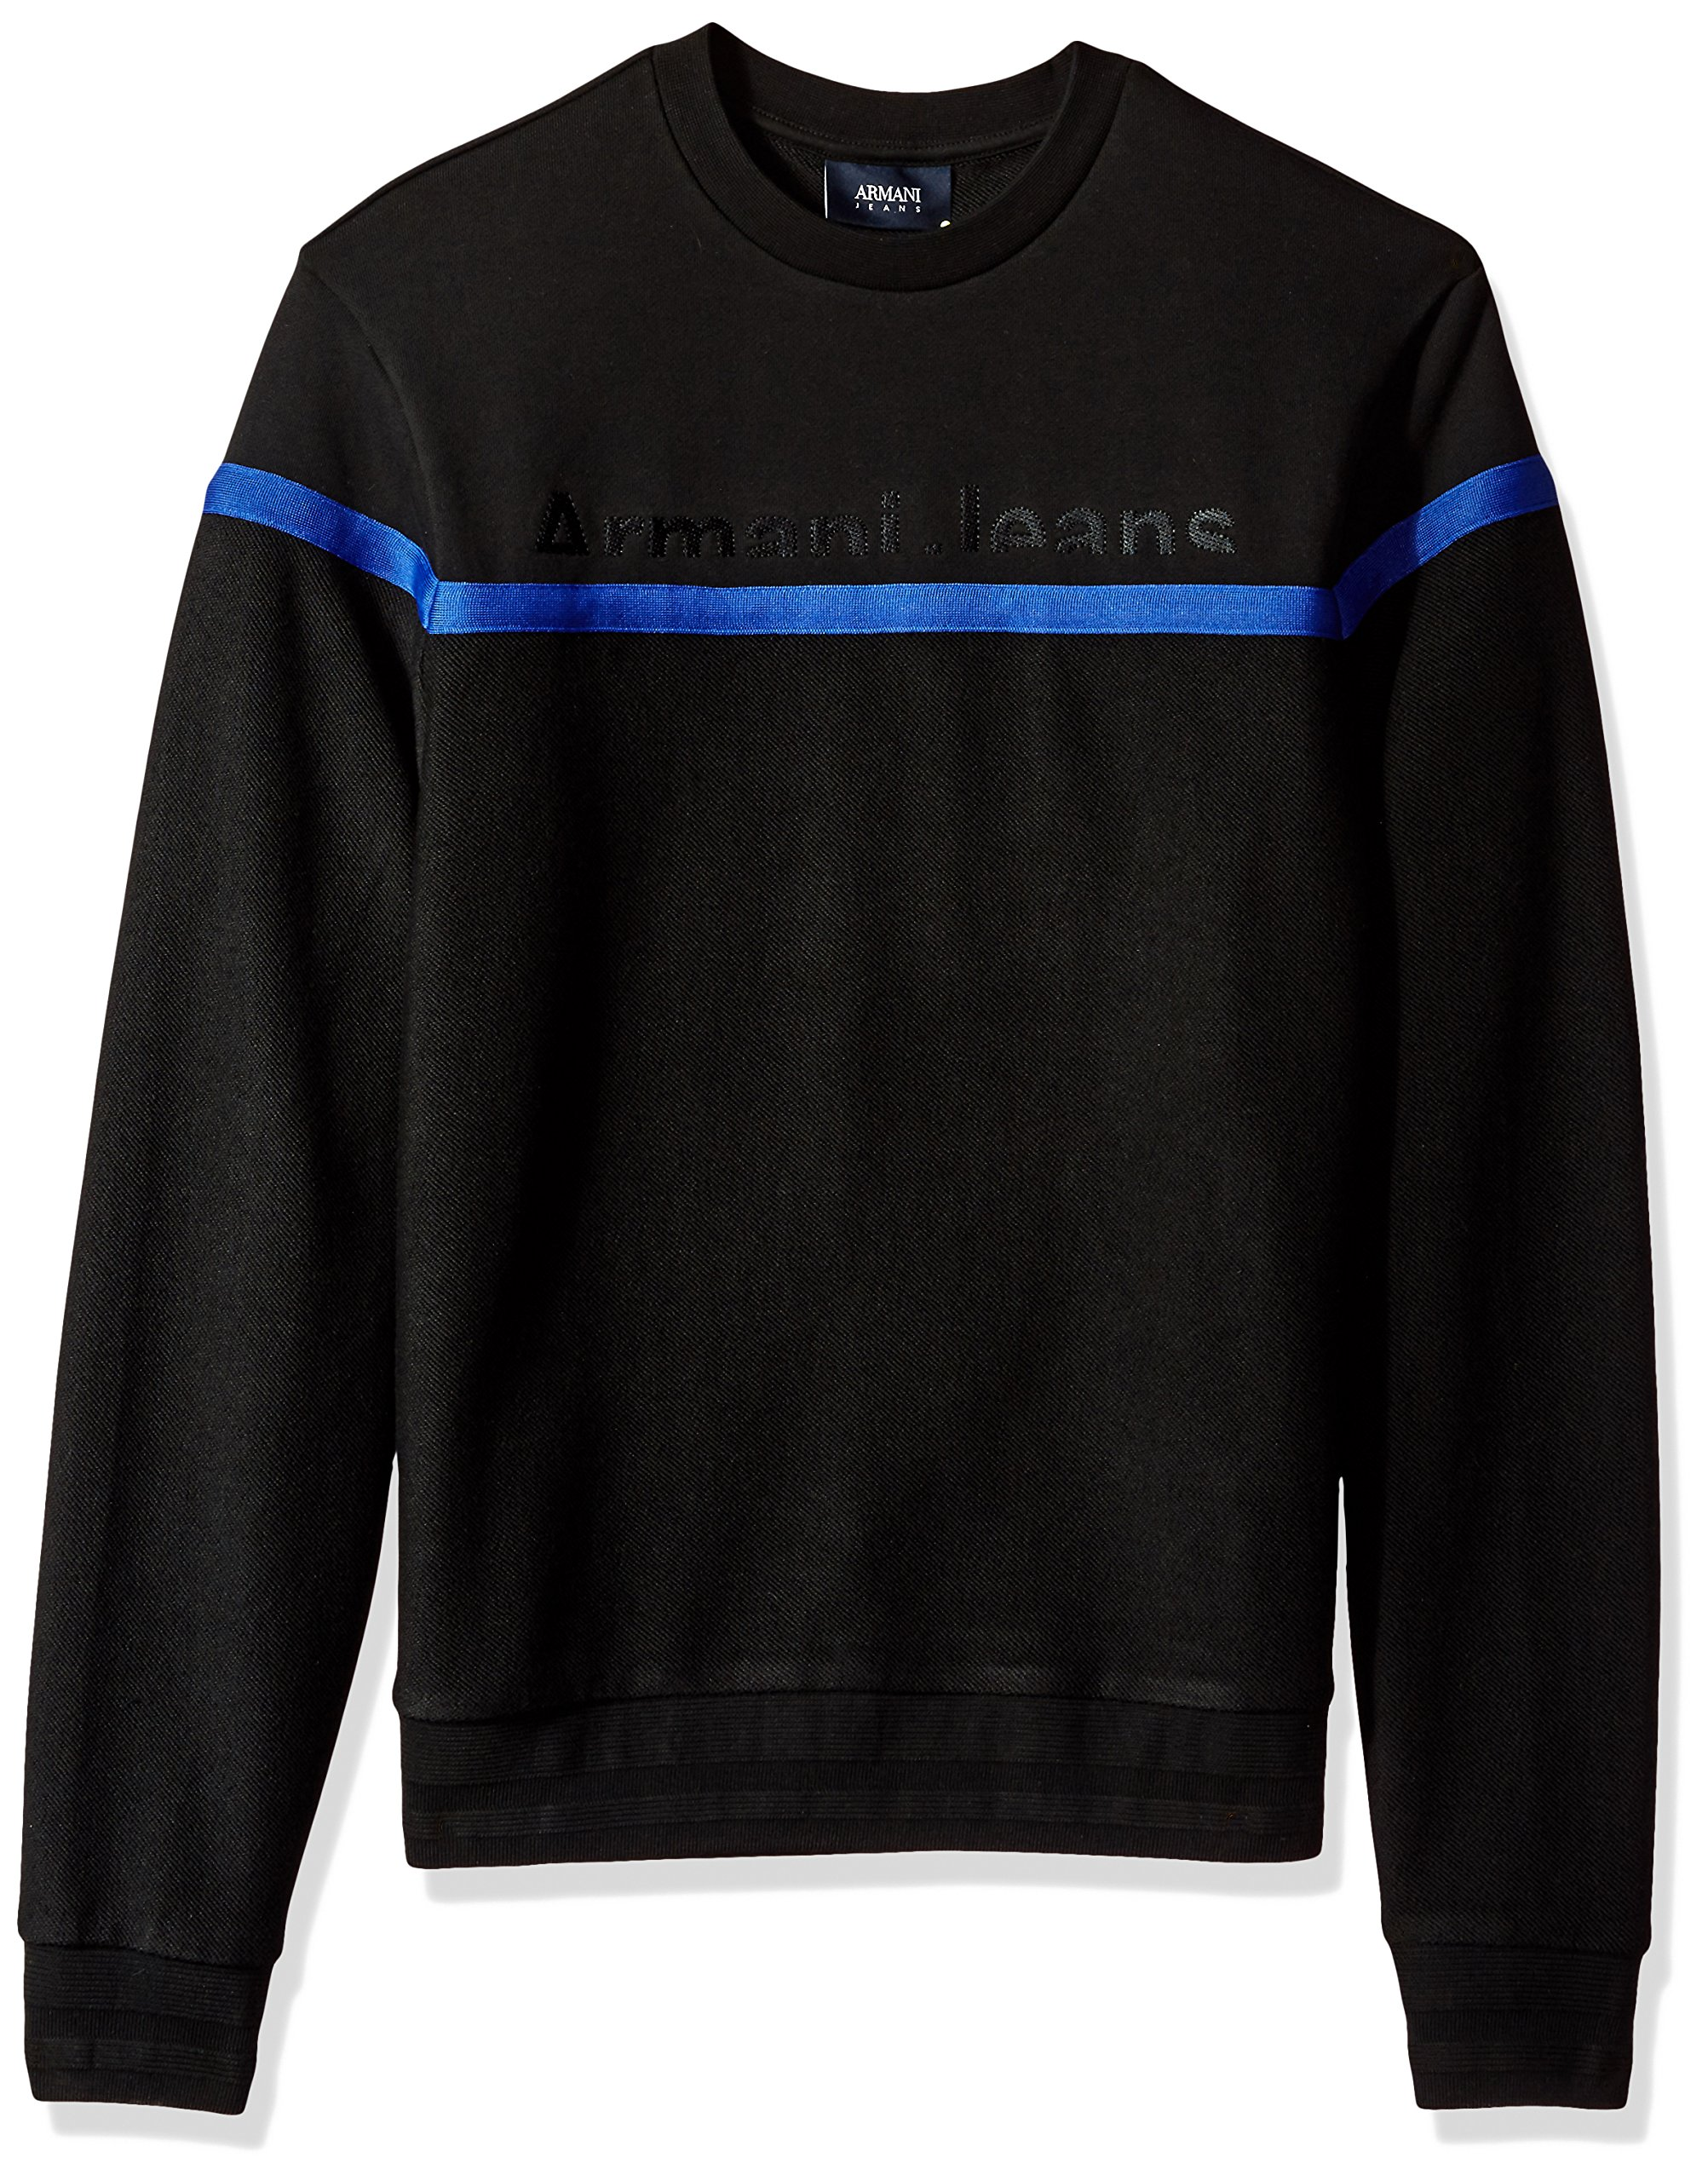 Armani Jeans Men's Plus Size Cotton Fleece Sweatshirt with Stripe Detail and Front Logo, Black, Medium